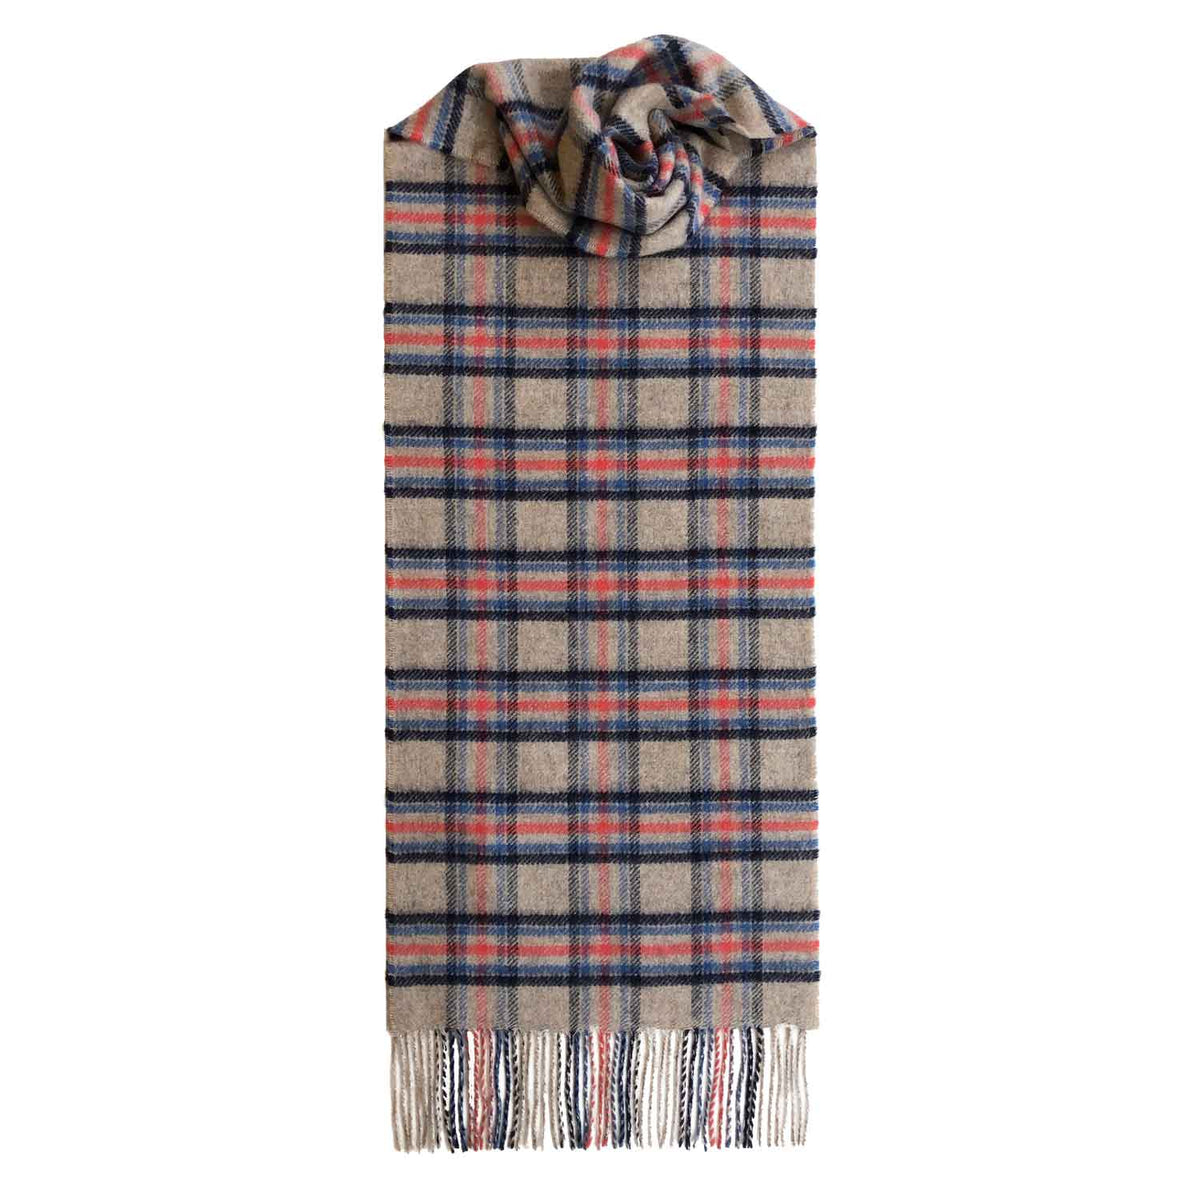 Lomond Cashmere | Beige Navy Pink | Check Cashmere Scarf With Fringes | Made in Scotland | Shop at The Cashmere Choice | London